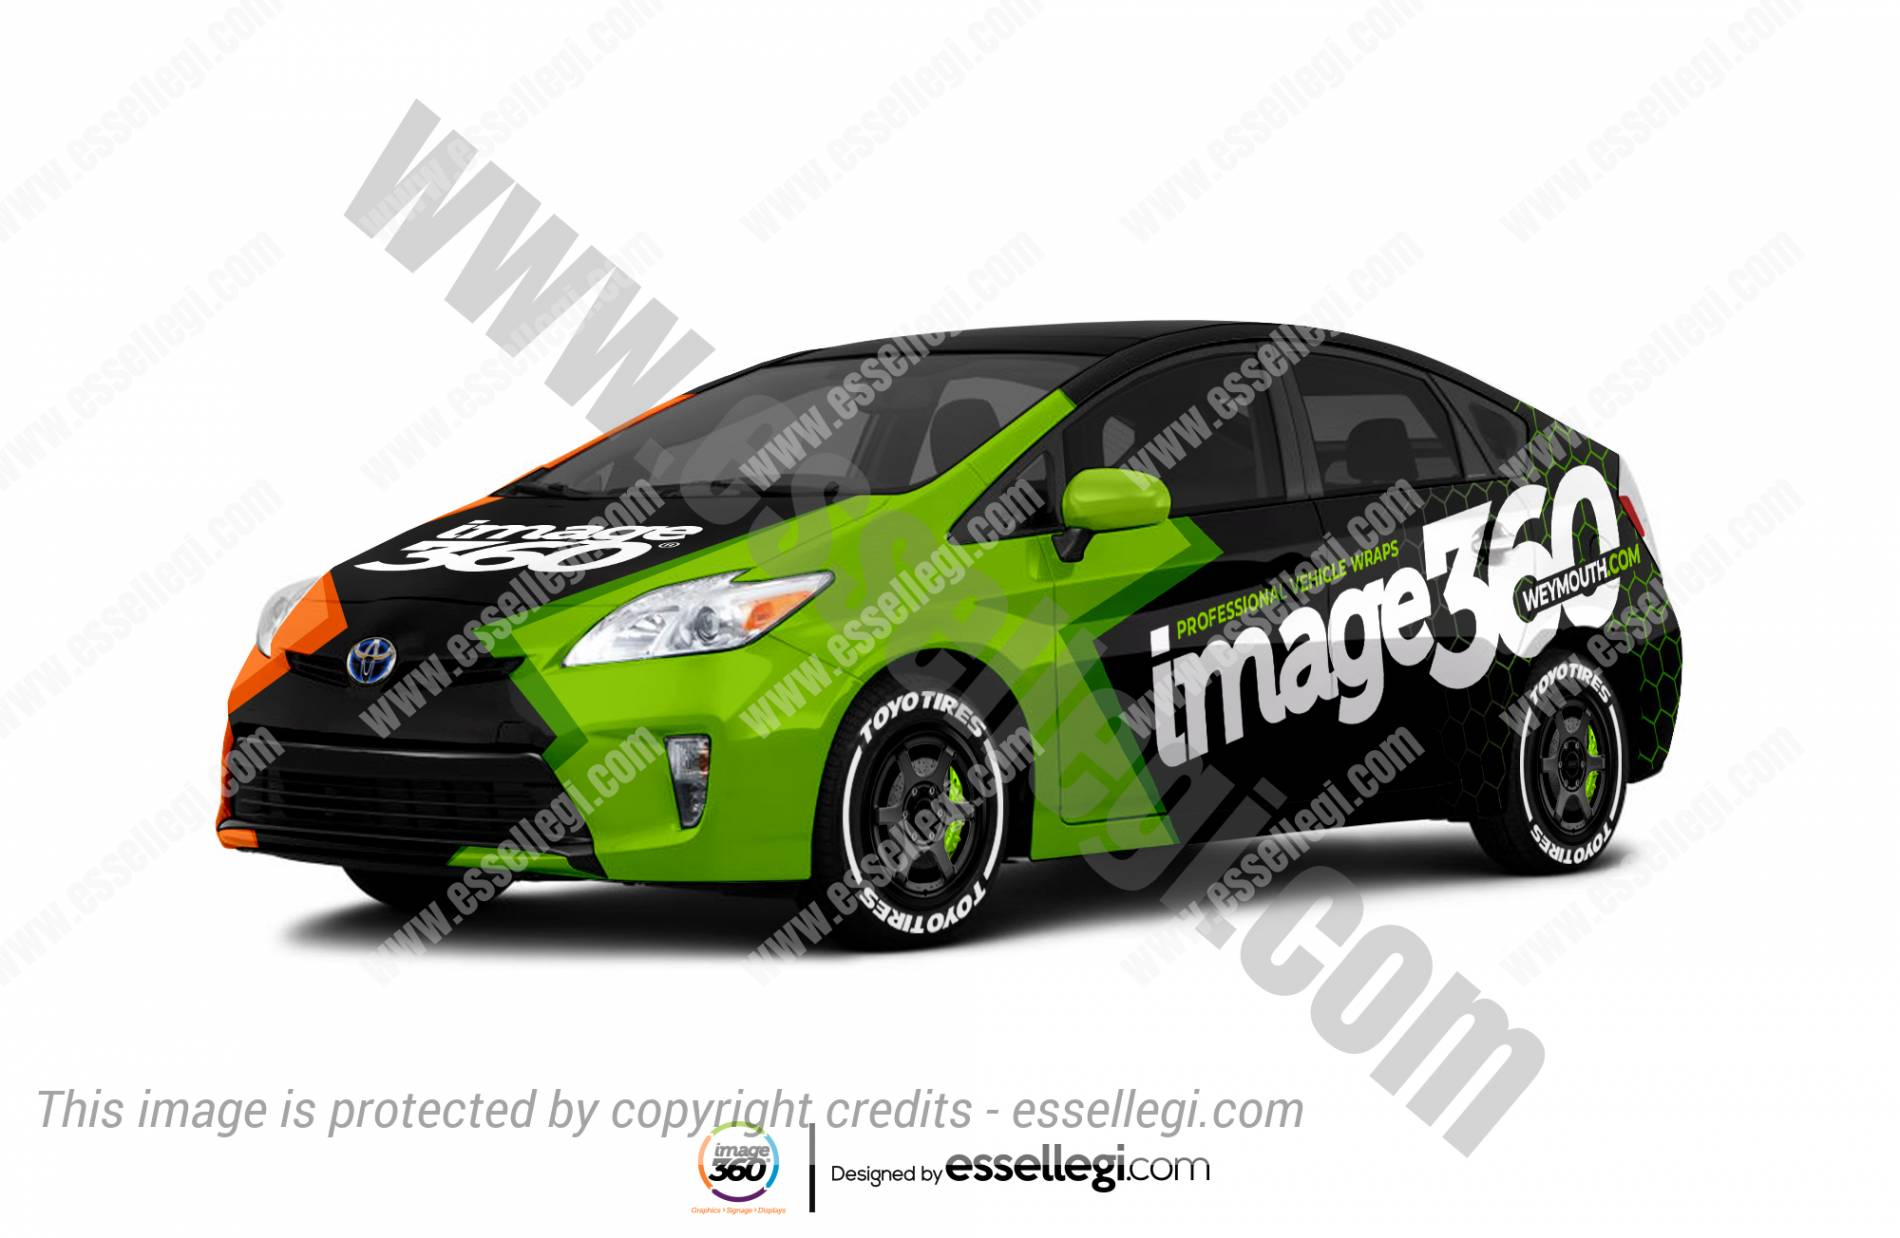 Toyota Prius wrap. Toyota Prius | Car Wrap Design by Essellegi. Car Signs, Car Signage, Car Signwriting, Car Wrap Designer, Car Graphic, Custom Vehicle Signage, Car Wrap Design by Essellegi.